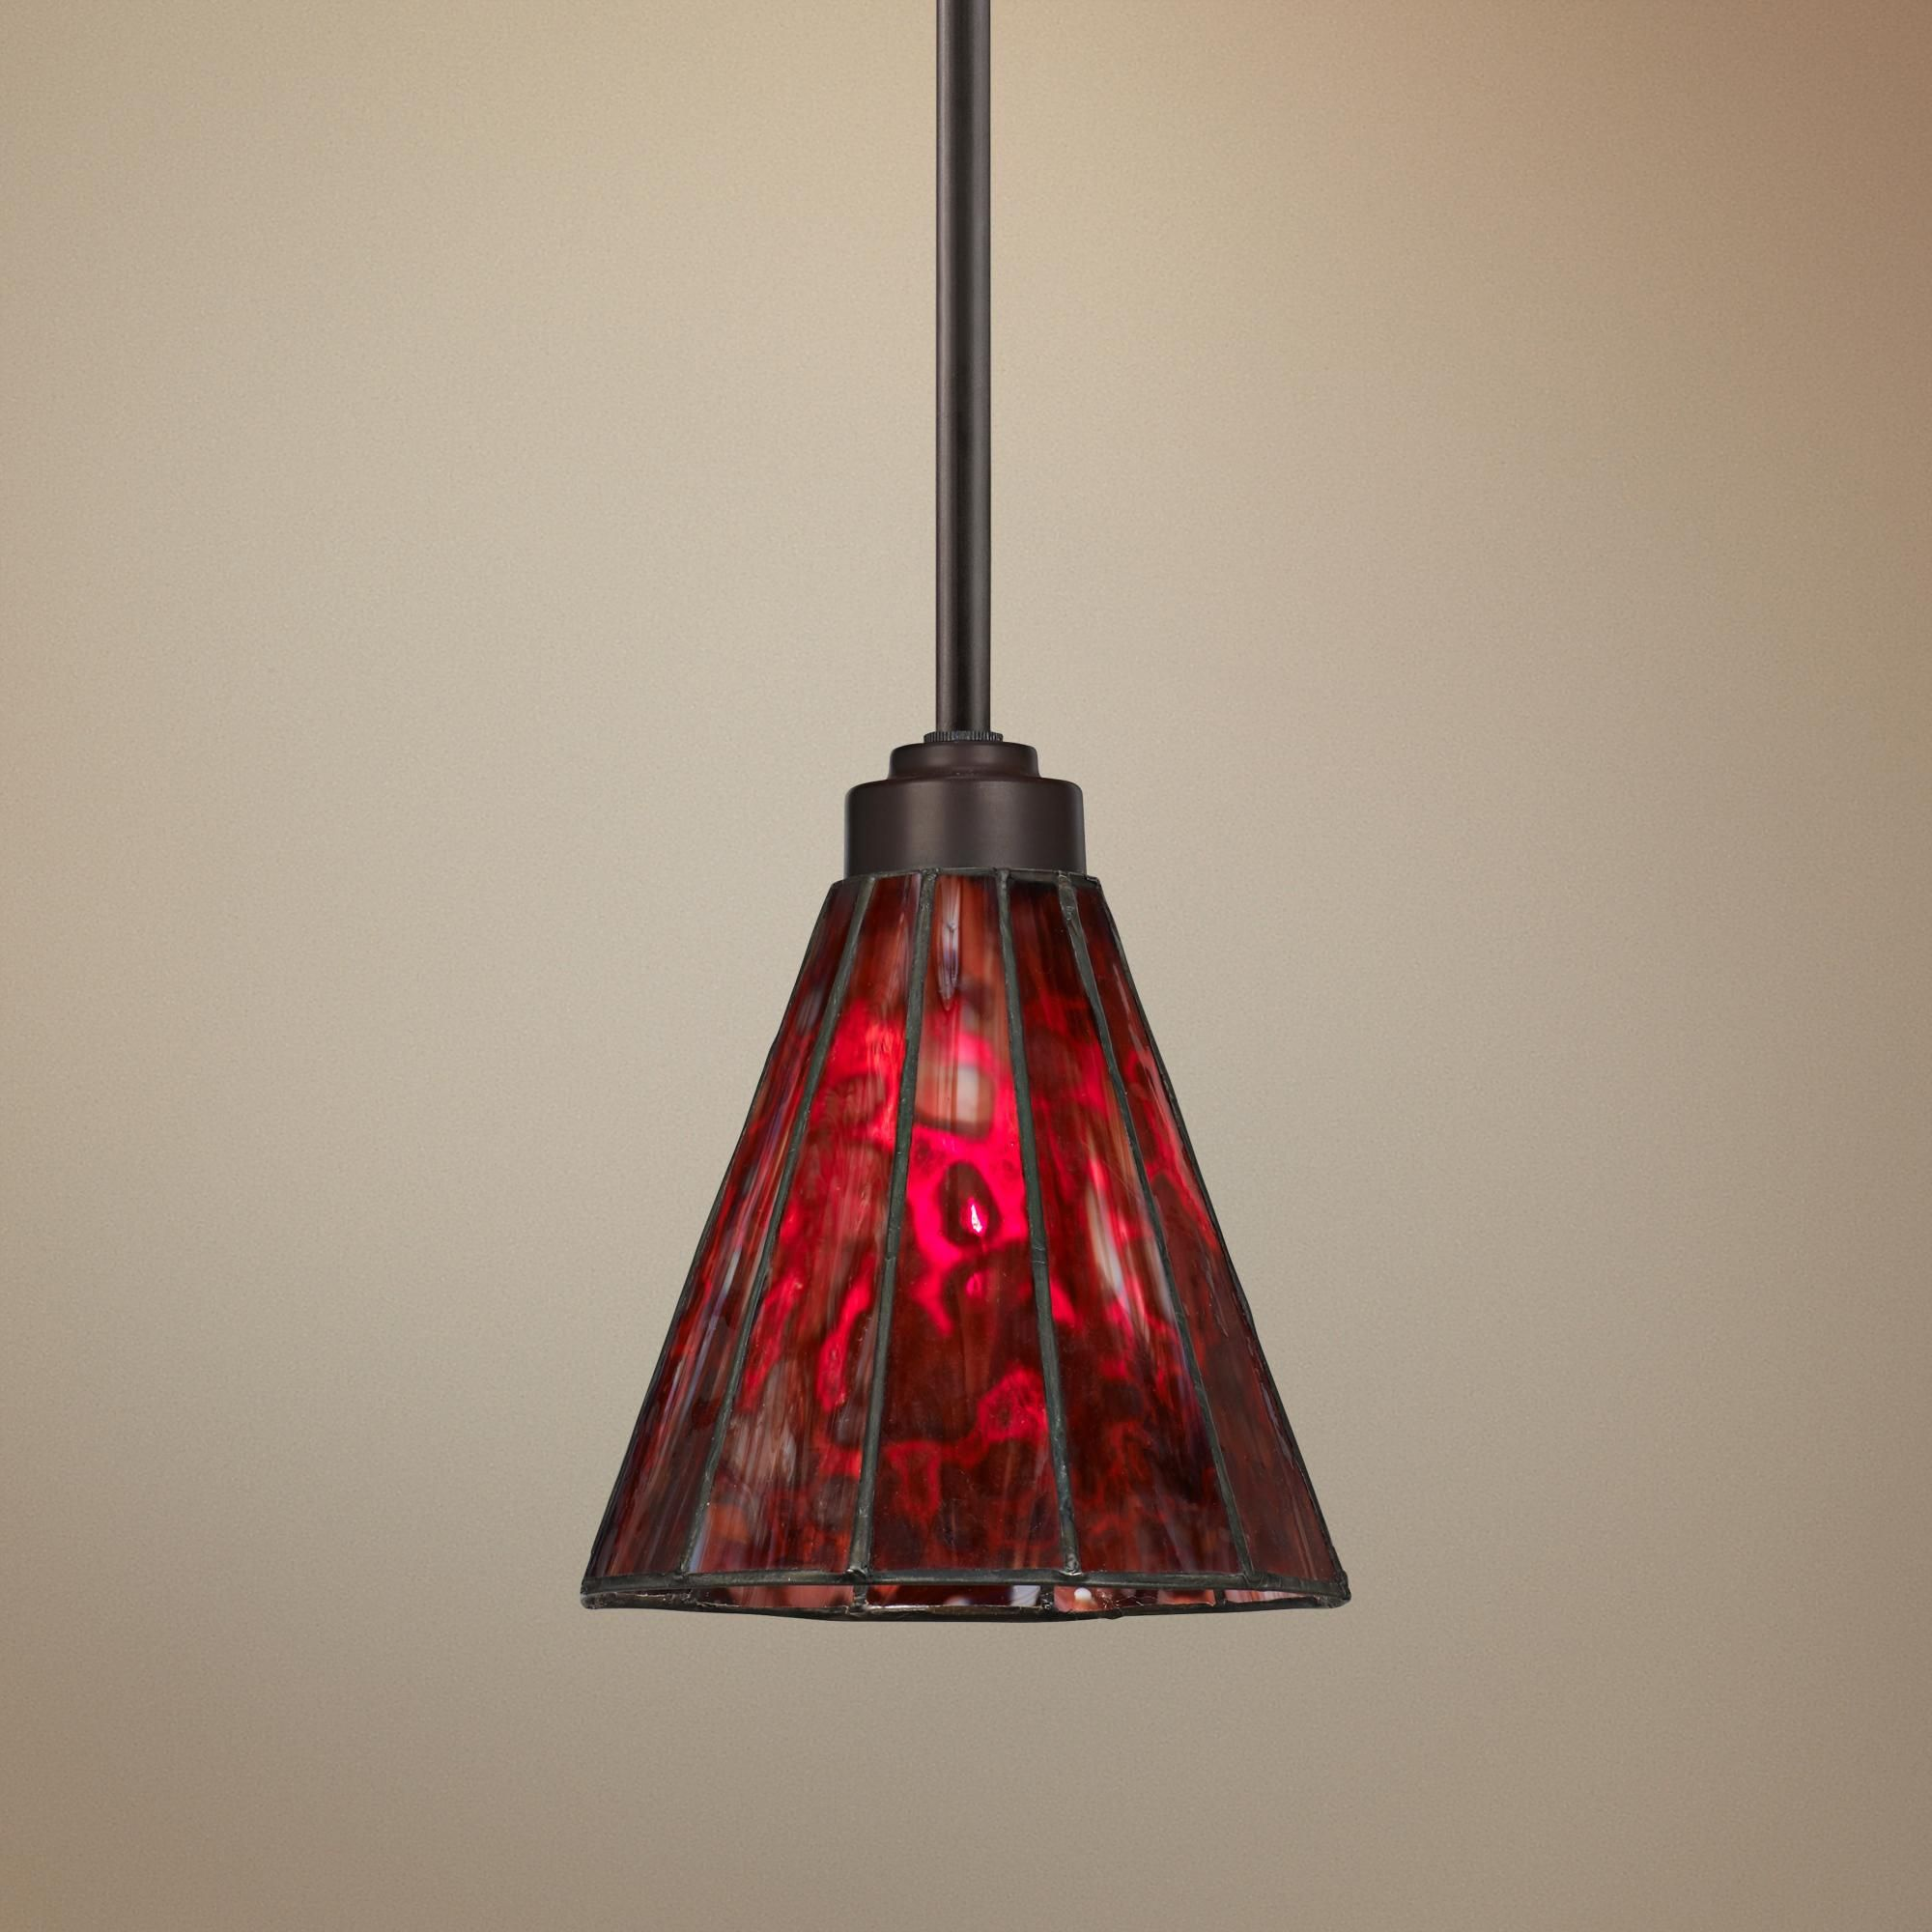 Tiffany Style 7 1 2 Wide Red Glass Mini Pendant Light Vintage